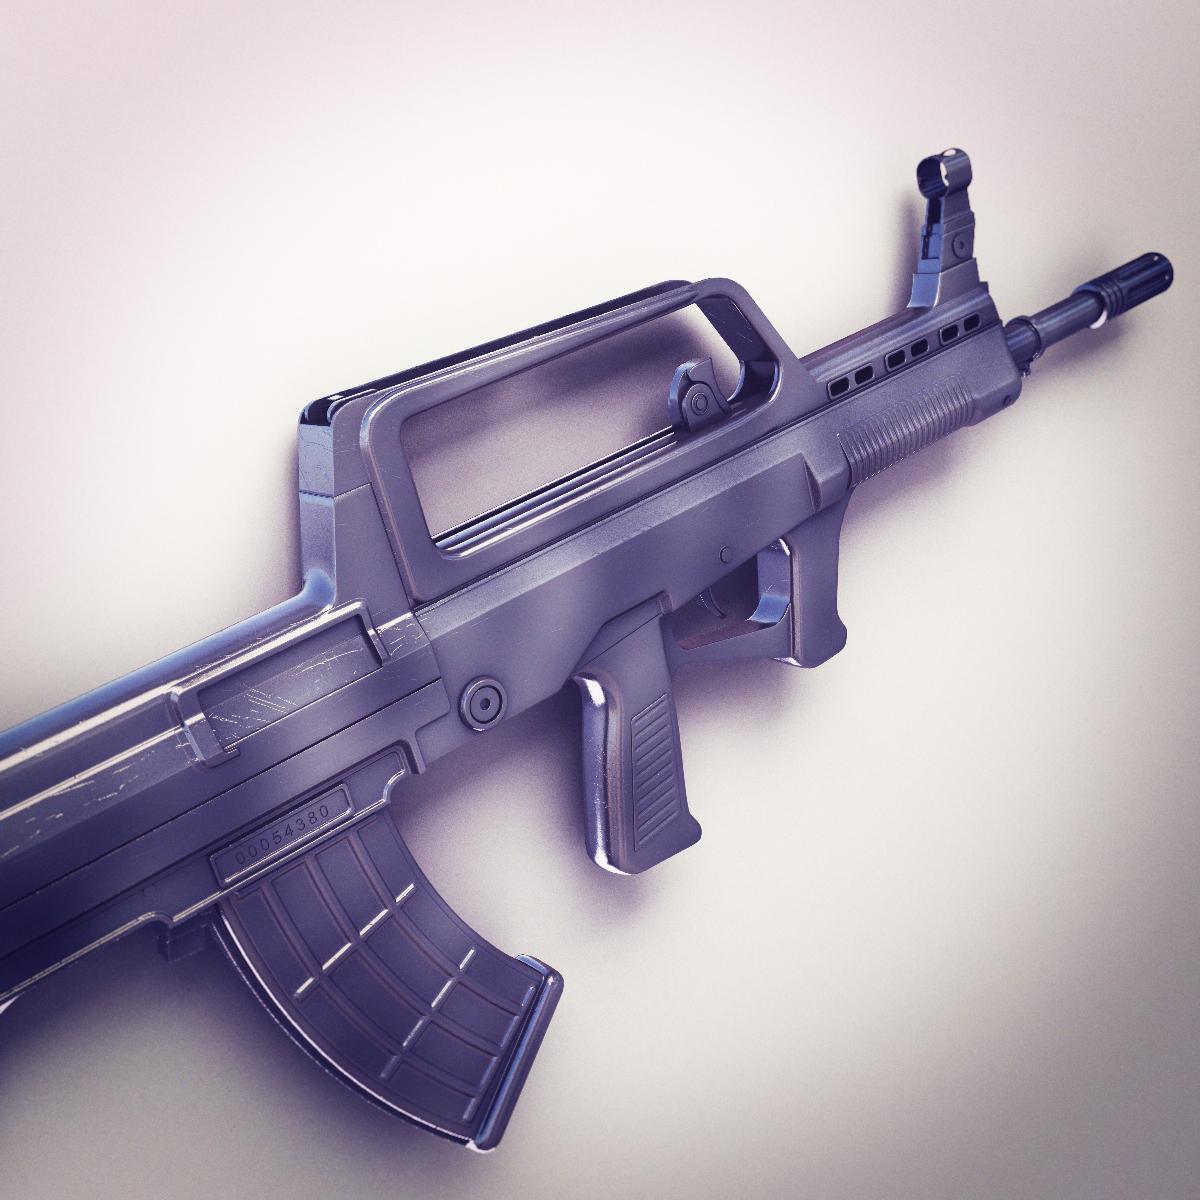 QBZ-95 Assault rifle Hi-Res